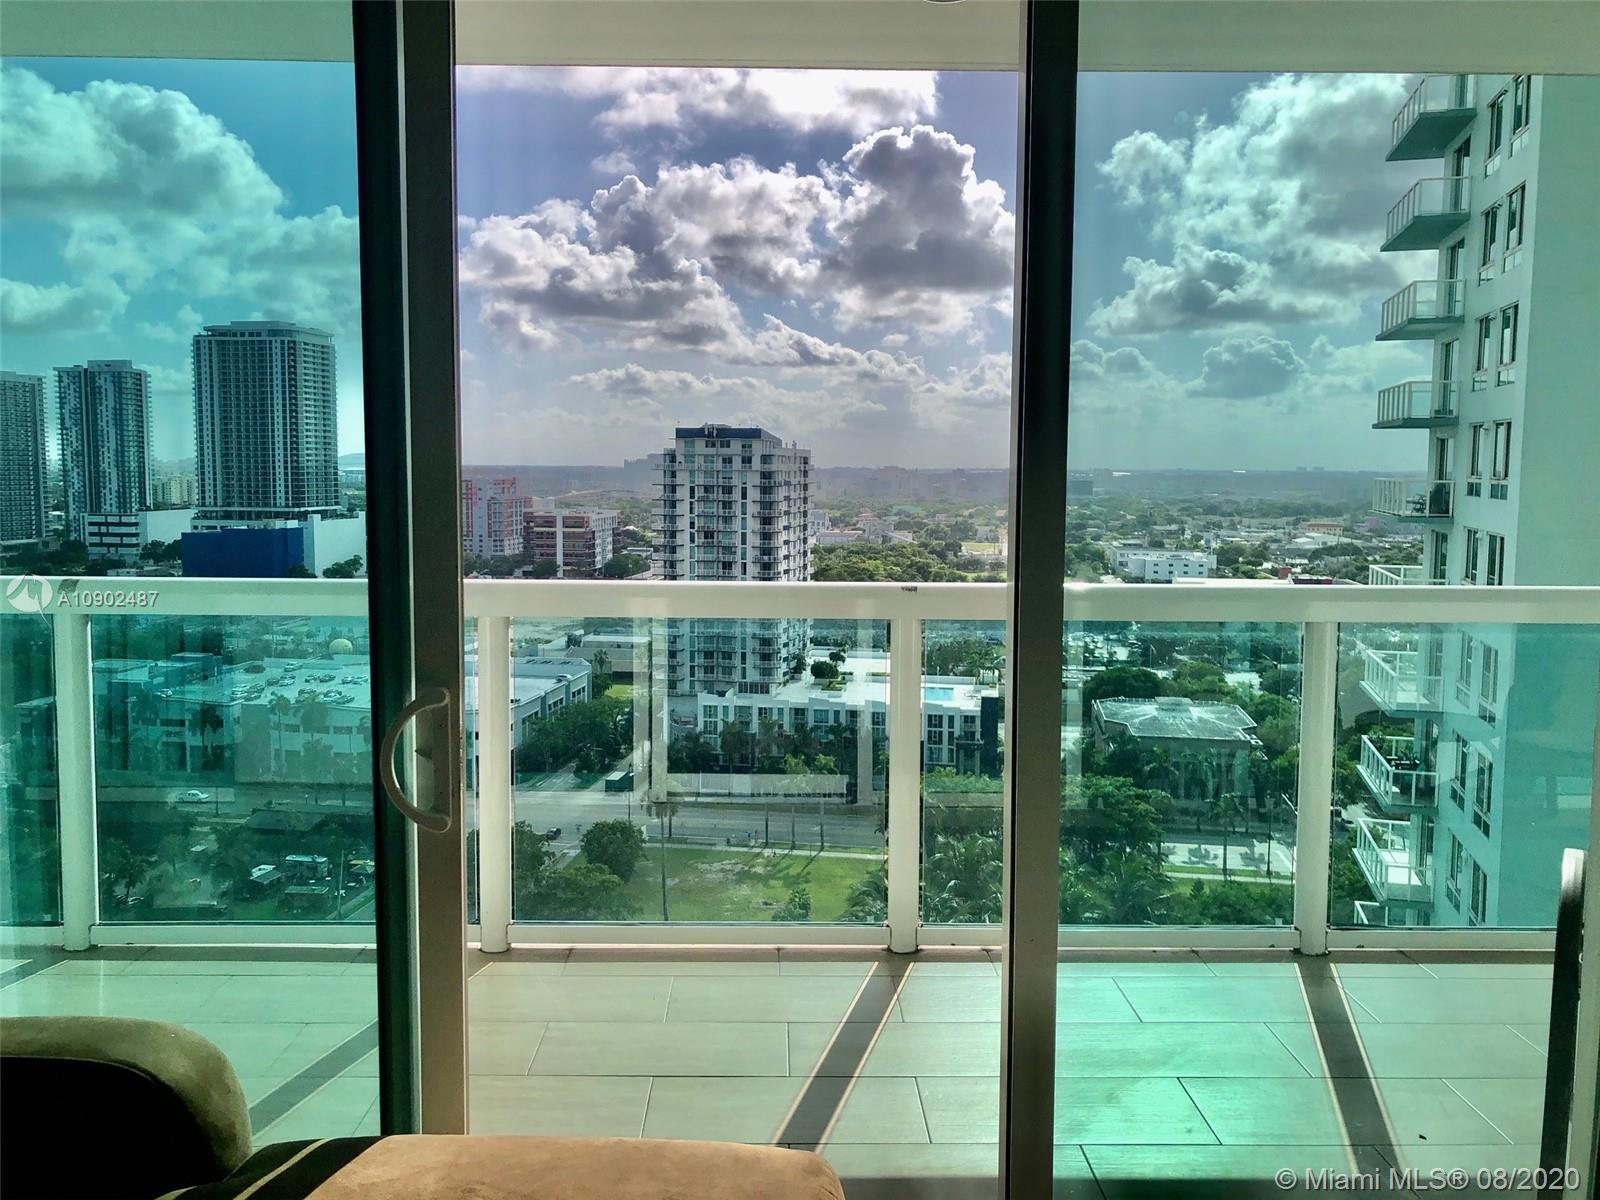 FULLY FURNISHED OR UNFURNISHED 2/2 W/ 1144 + 192 SQ FT IN TERRACE W/BEAUTIFUL SUNSET/POOL VIEWS FROM THE 22ND FLOOR. CABLE, HIGH SPEED INTERNET & 1 PARKING INCLUDED IN RENT.FULL AMENITIES BUILDING INCLUDING VALET,DOORMAN,CONCIRGE,POLL & GYM ATTENDANT,IN_HOUSE MANAGEMENT,SPECTACULAR POOL AREA, STATE-OF-THE-ART GYM ......CABLE,HIGH SPEED INTERNET & WATER INCLUDED IN LOW HOA. WALK TO MARGARET PACE PARK,NIGHTLIFE, BANKS, SHOPS & PUBLIX & 3 BLOCKS TO PEOPLE MOVER. 5 MINUTES TO SOUTH BEACH, DOWNTOWN MIAMI, THE DESIGN DISTRICT, MIDTOWN & WYNWOOD.EASY ACCESS TO ALL MAJOR HIGHWAYS & PUBLIC TRANSPOTATION.EASY TO SHOW.